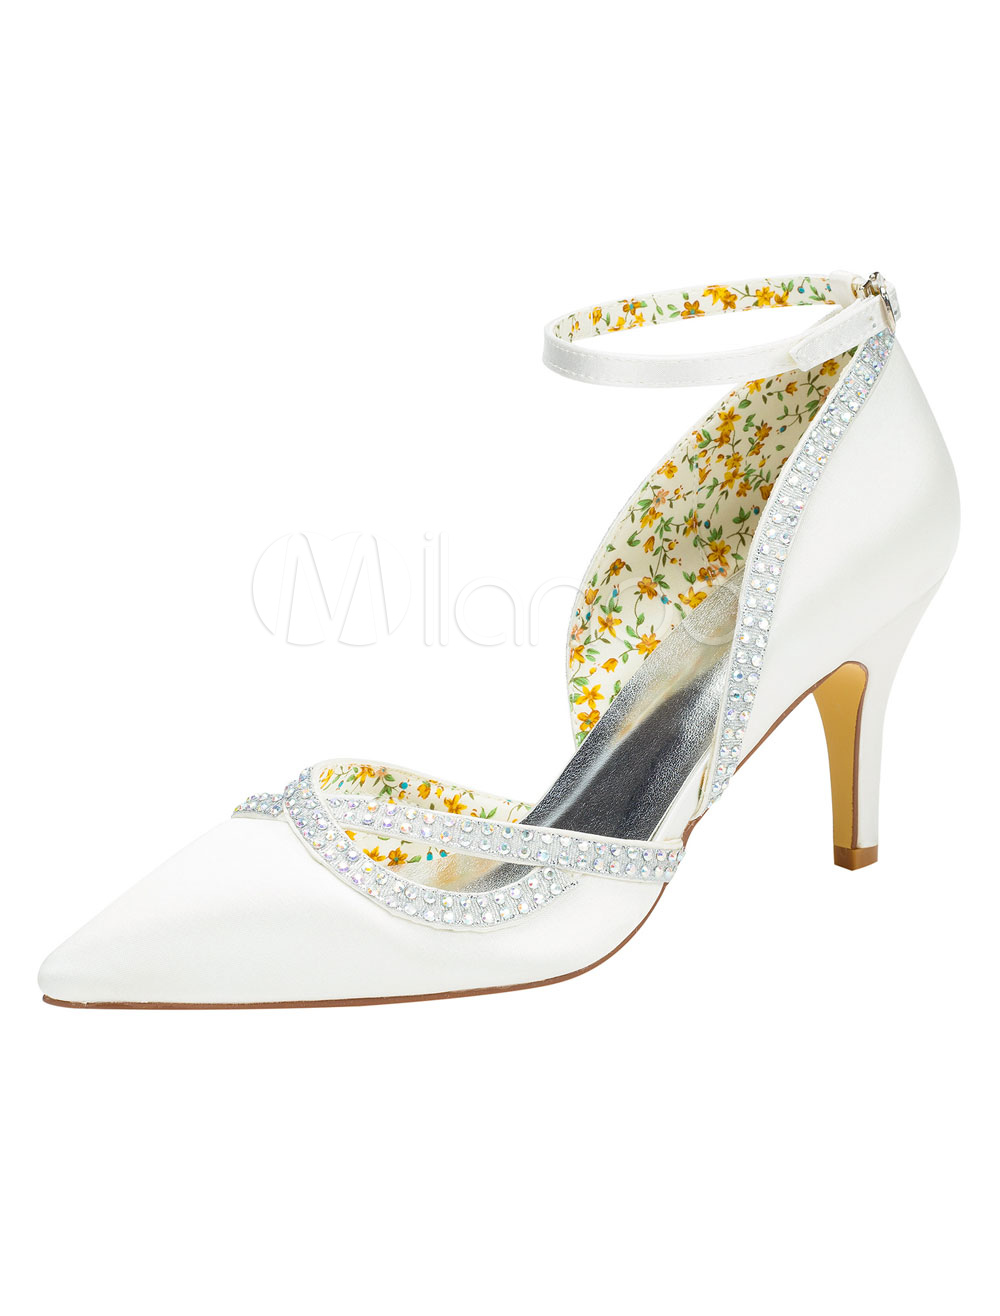 Buy Ivory Bridal Shoes High Heel Ankle Strap Pumps Women's Rhinestones Pointed Toe Evening Shoes for $53.19 in Milanoo store